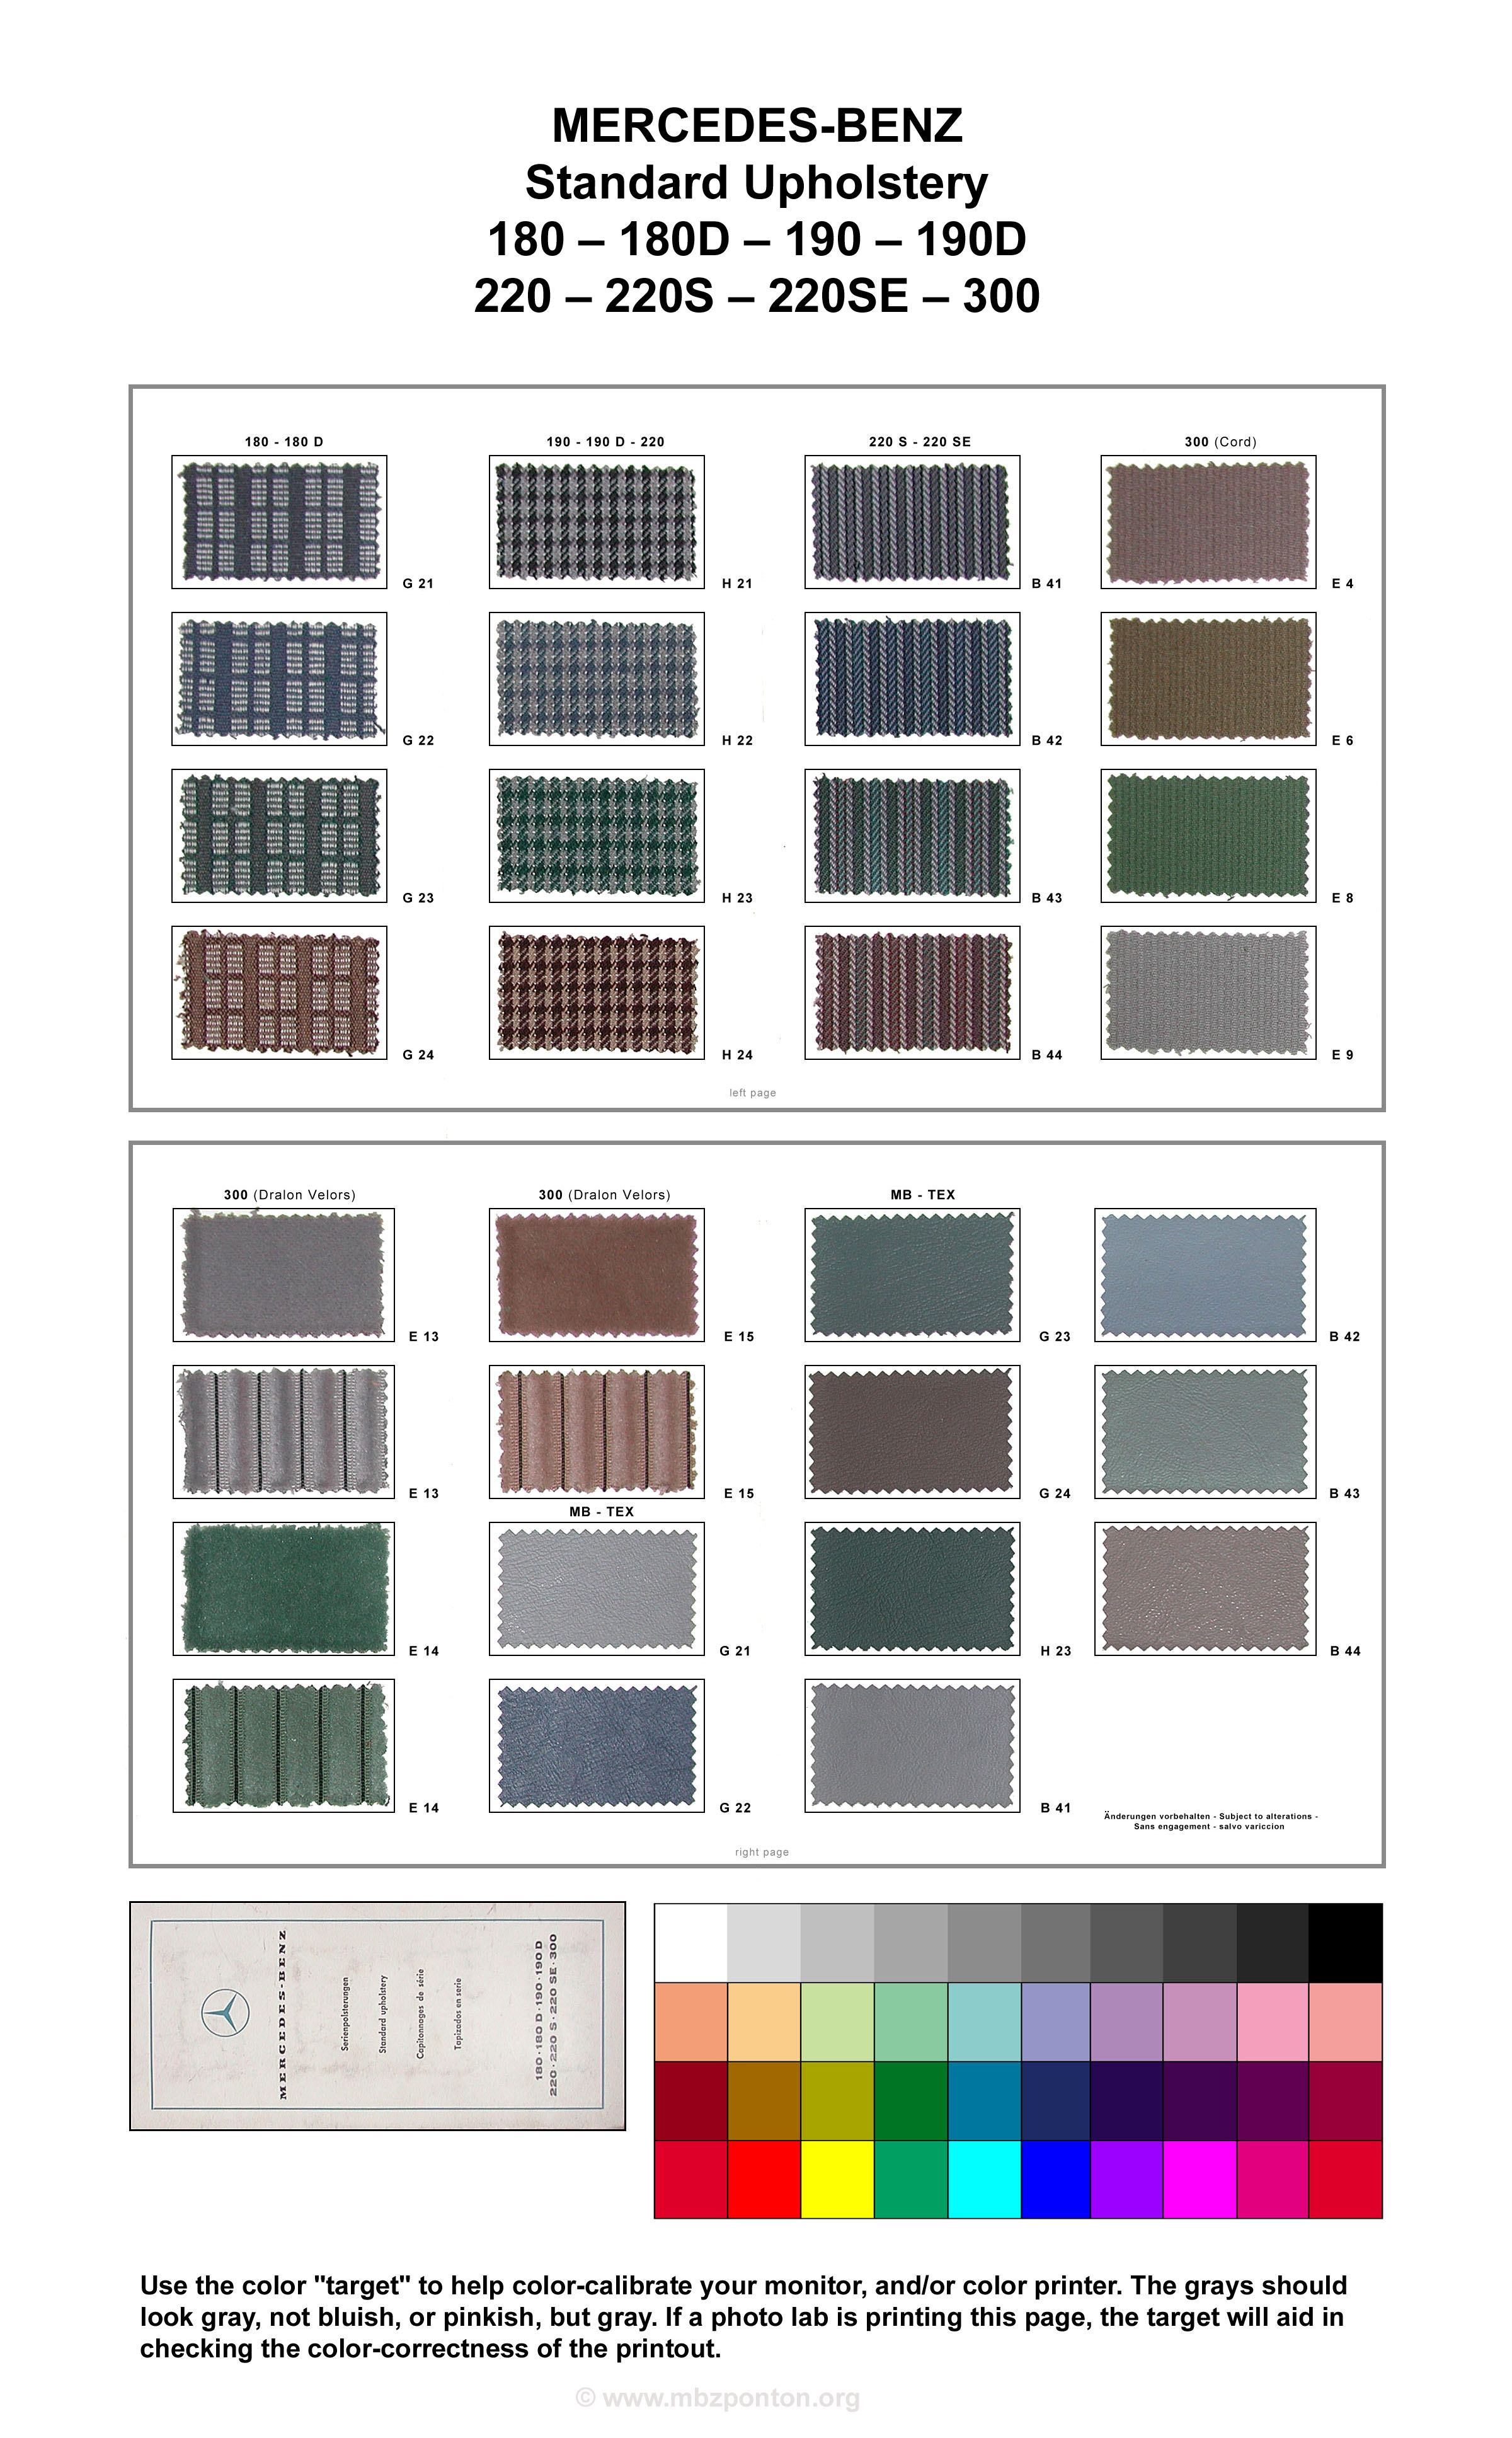 Mercedes Benz Ponton Paint Codes Color Charts 1955 Ford F100 Colors Standard Upholstery Brochure